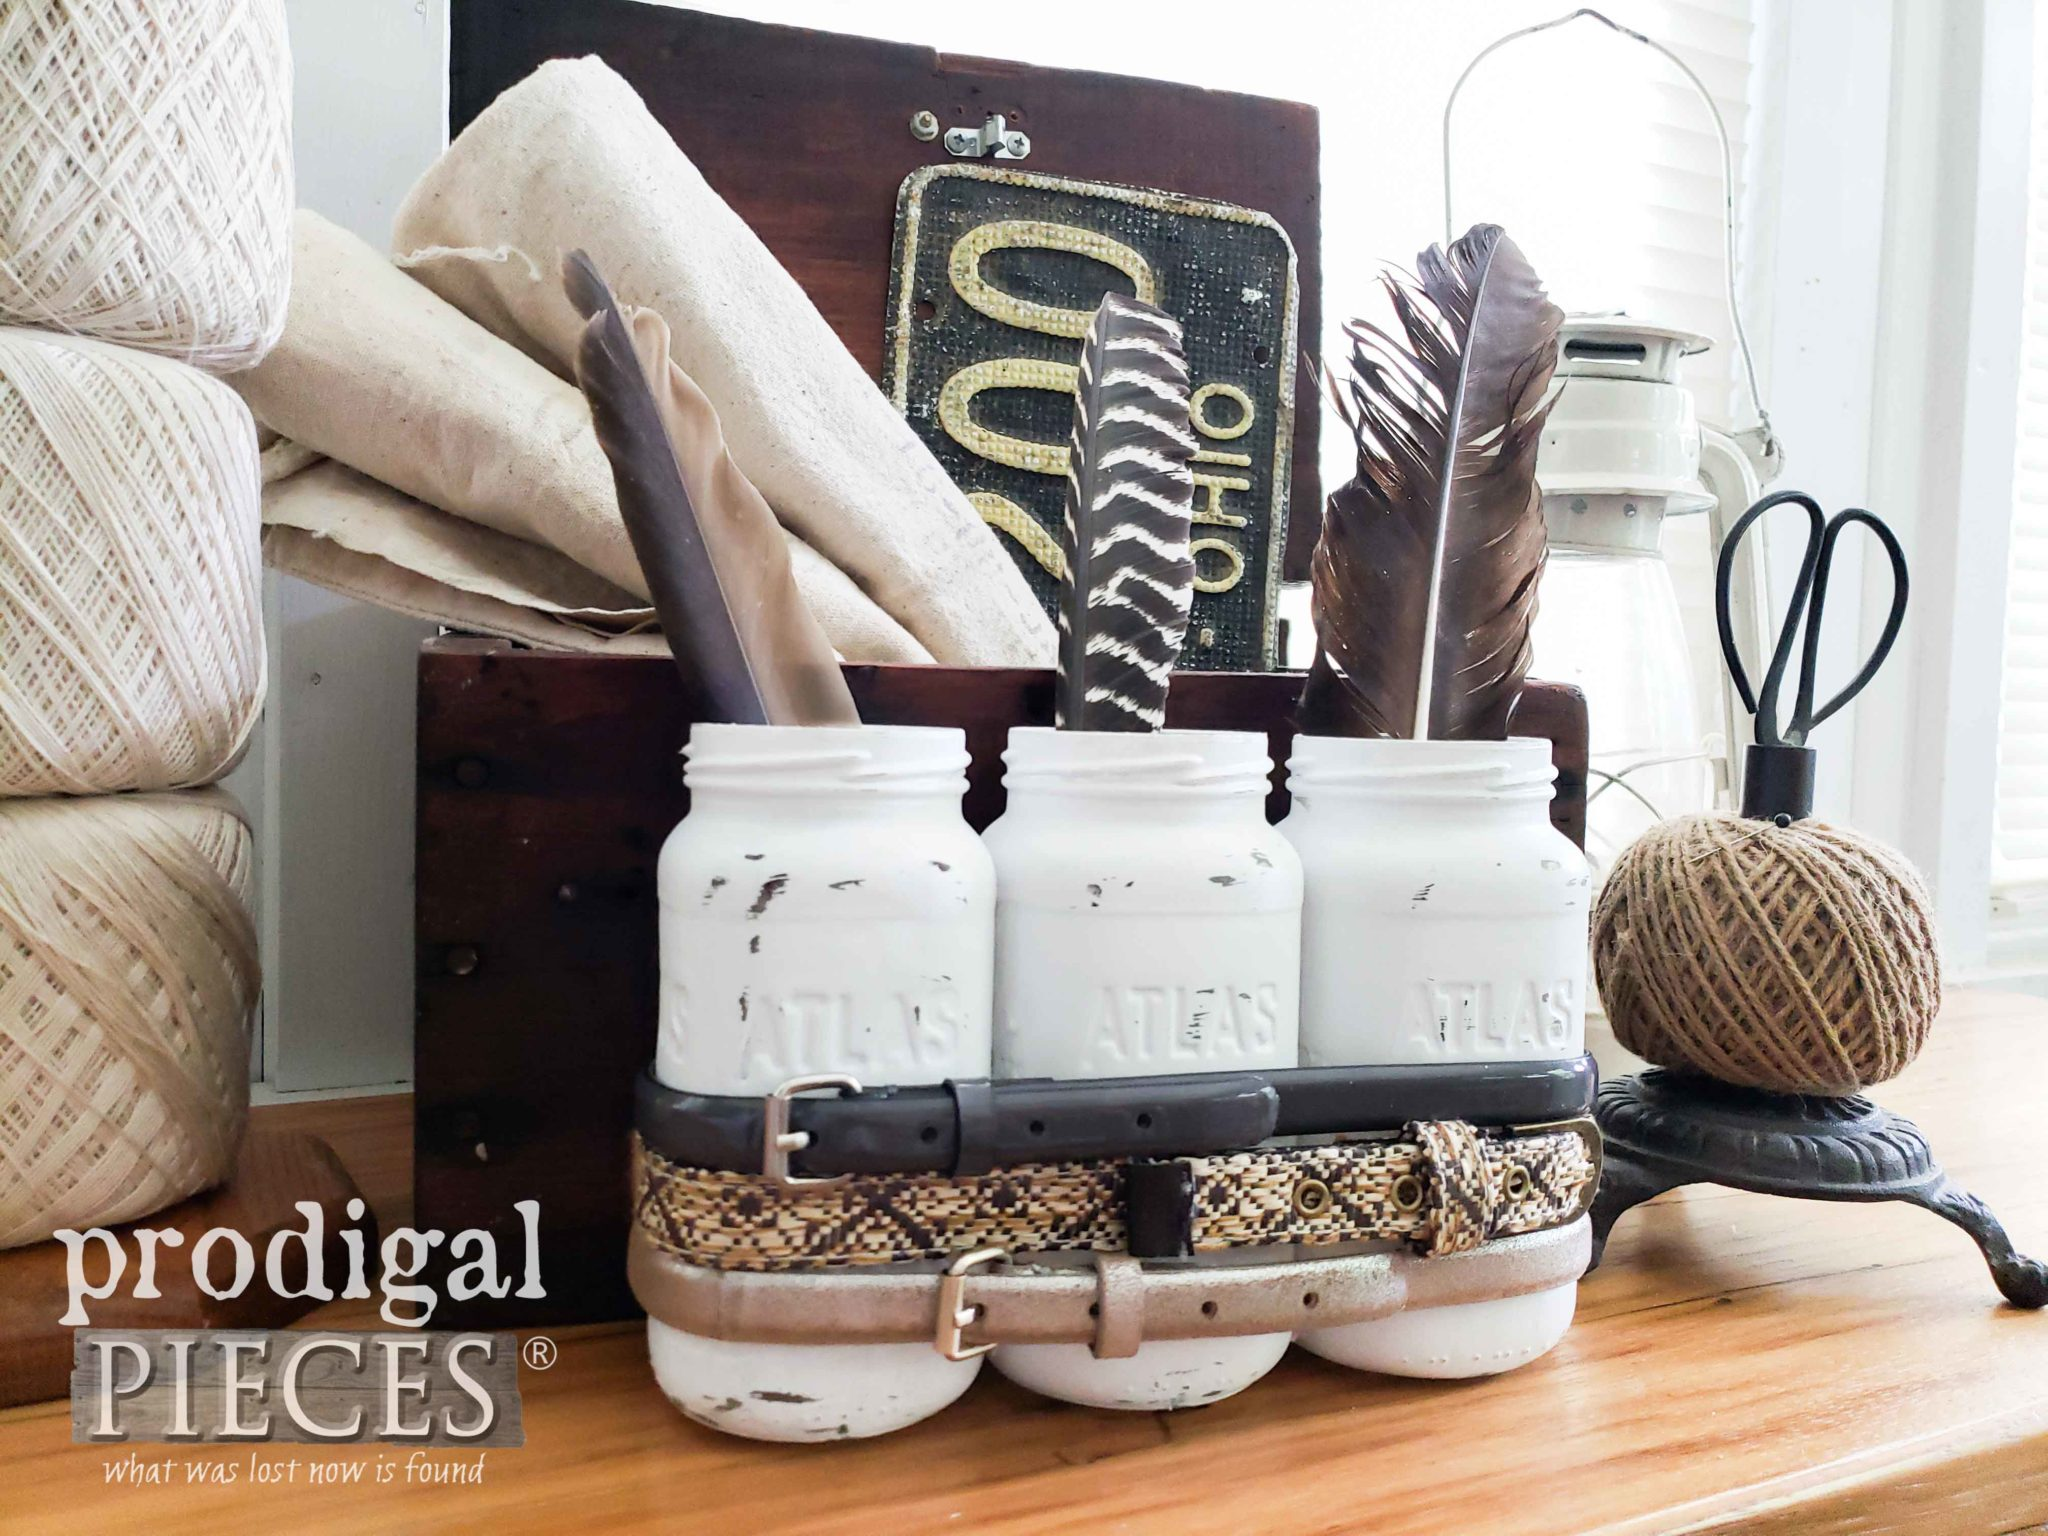 Industrial Farmhouse DIY Decor Using Thrifted Items by Larissa of Prodigal Pieces   prodigalpieces.com #prodigalpieces #farmhouse #homedecor #diy